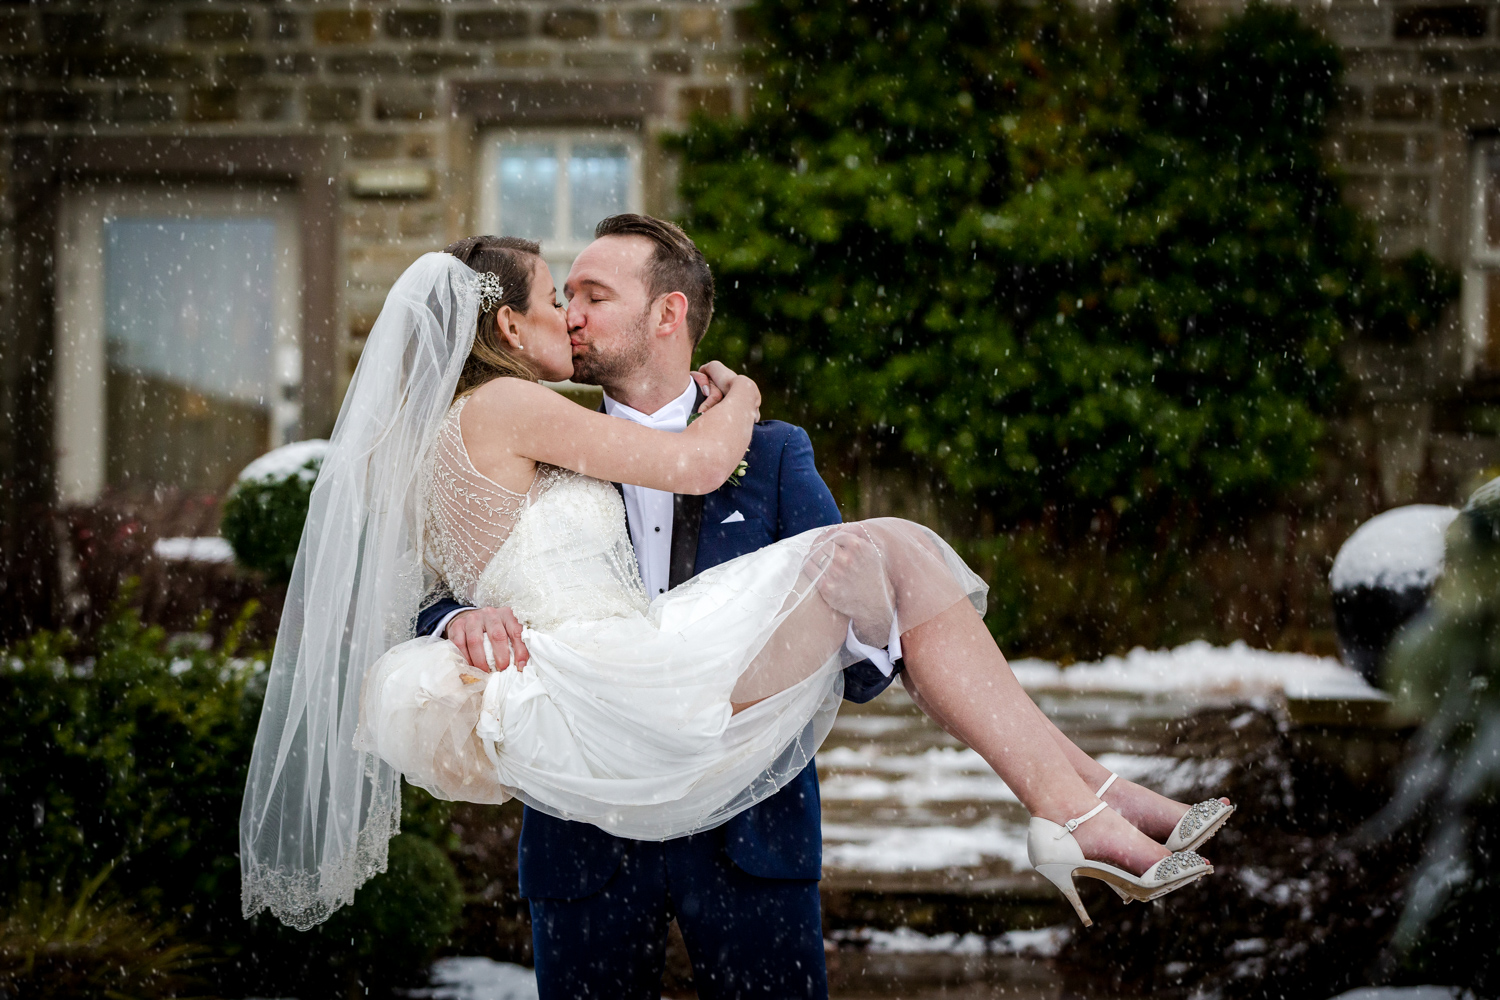 The groom picks up his bride during this snowy wedding at Stanley House Hotel in Clitheroe